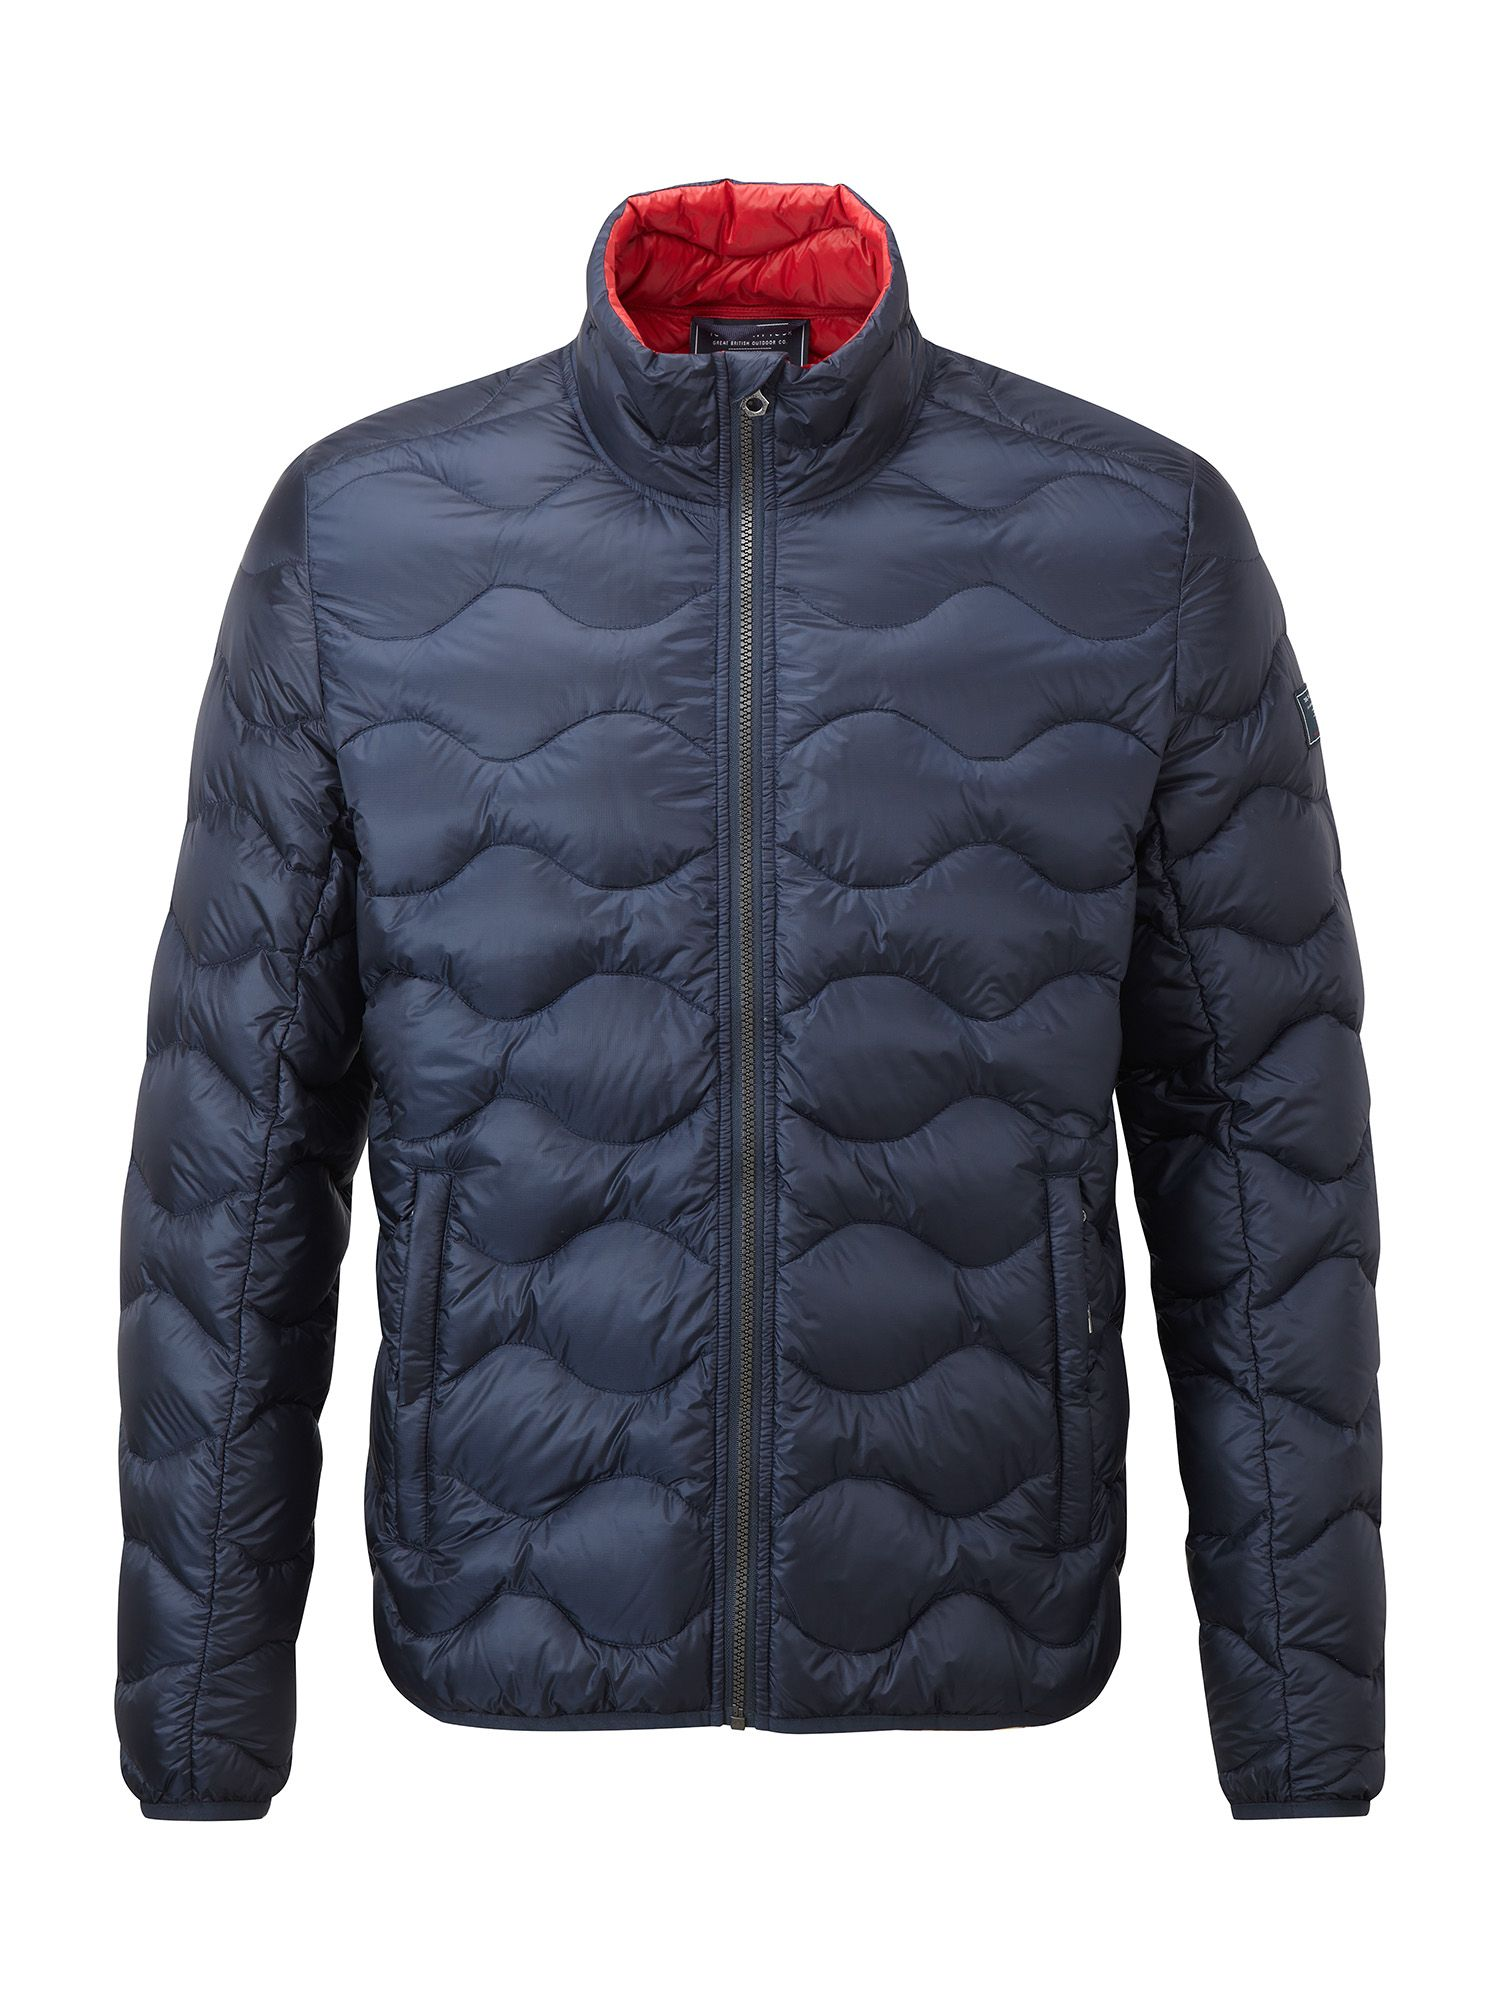 Find great deals on eBay for mens used down jackets. Shop with confidence.